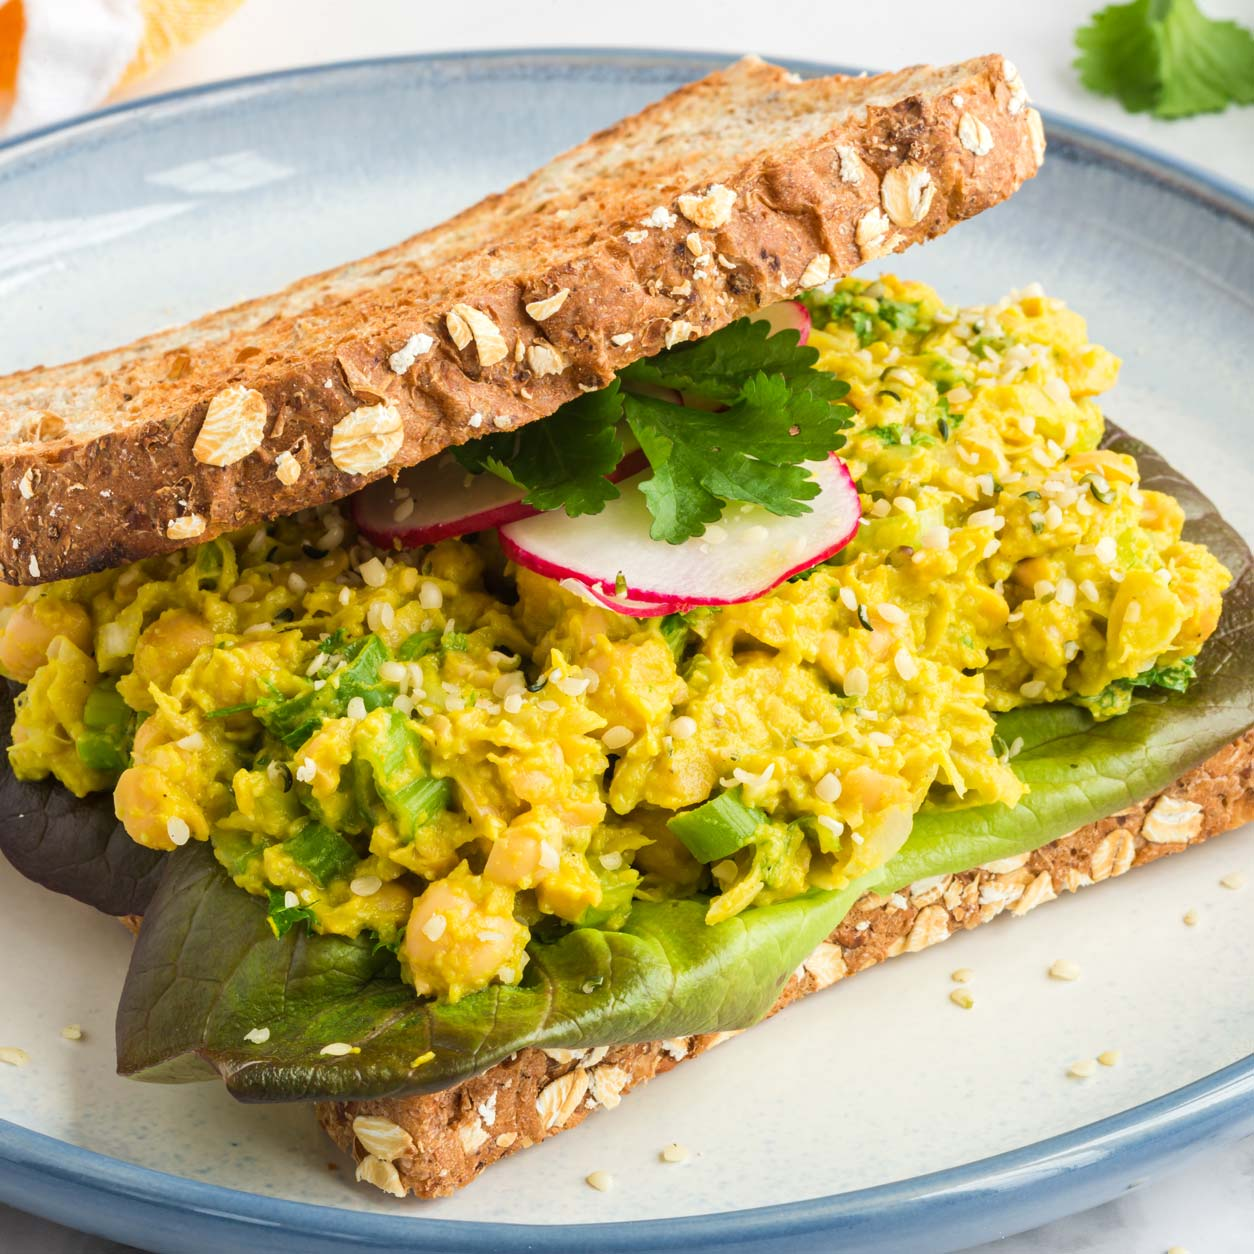 Easy plant based recipes: Chickpea Avocado Salad